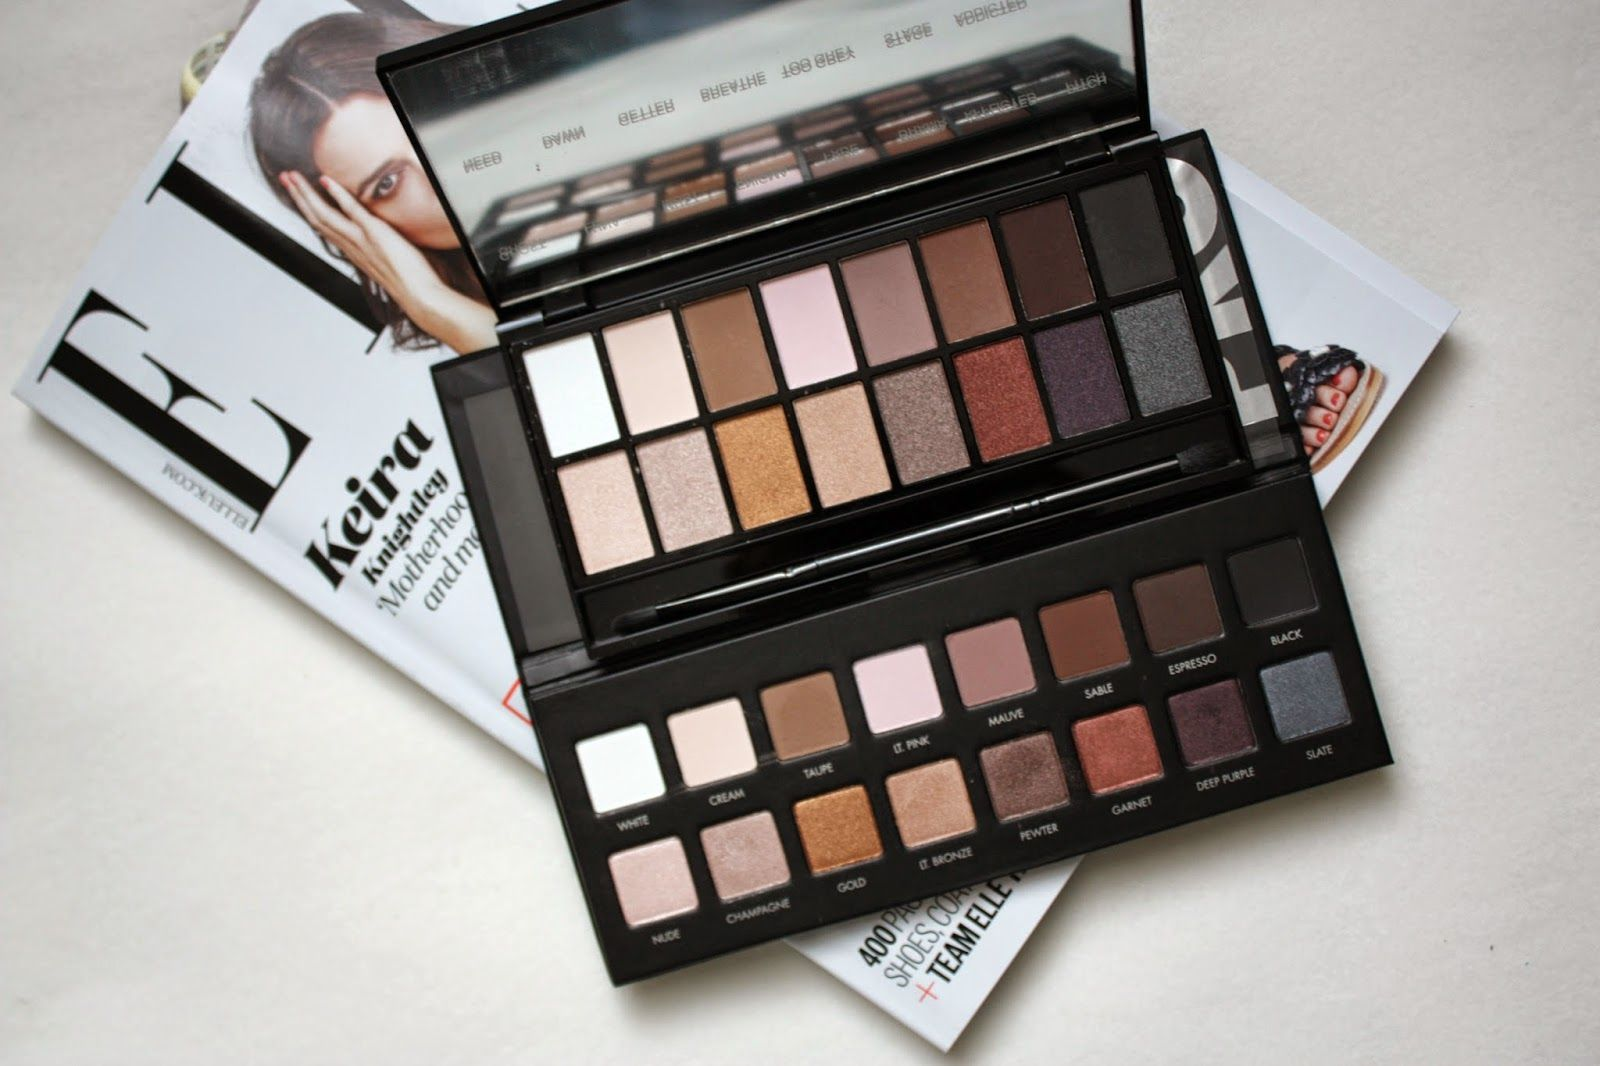 Makeup Revolution Iconic Pro 1 dupe for the Lorac Pro